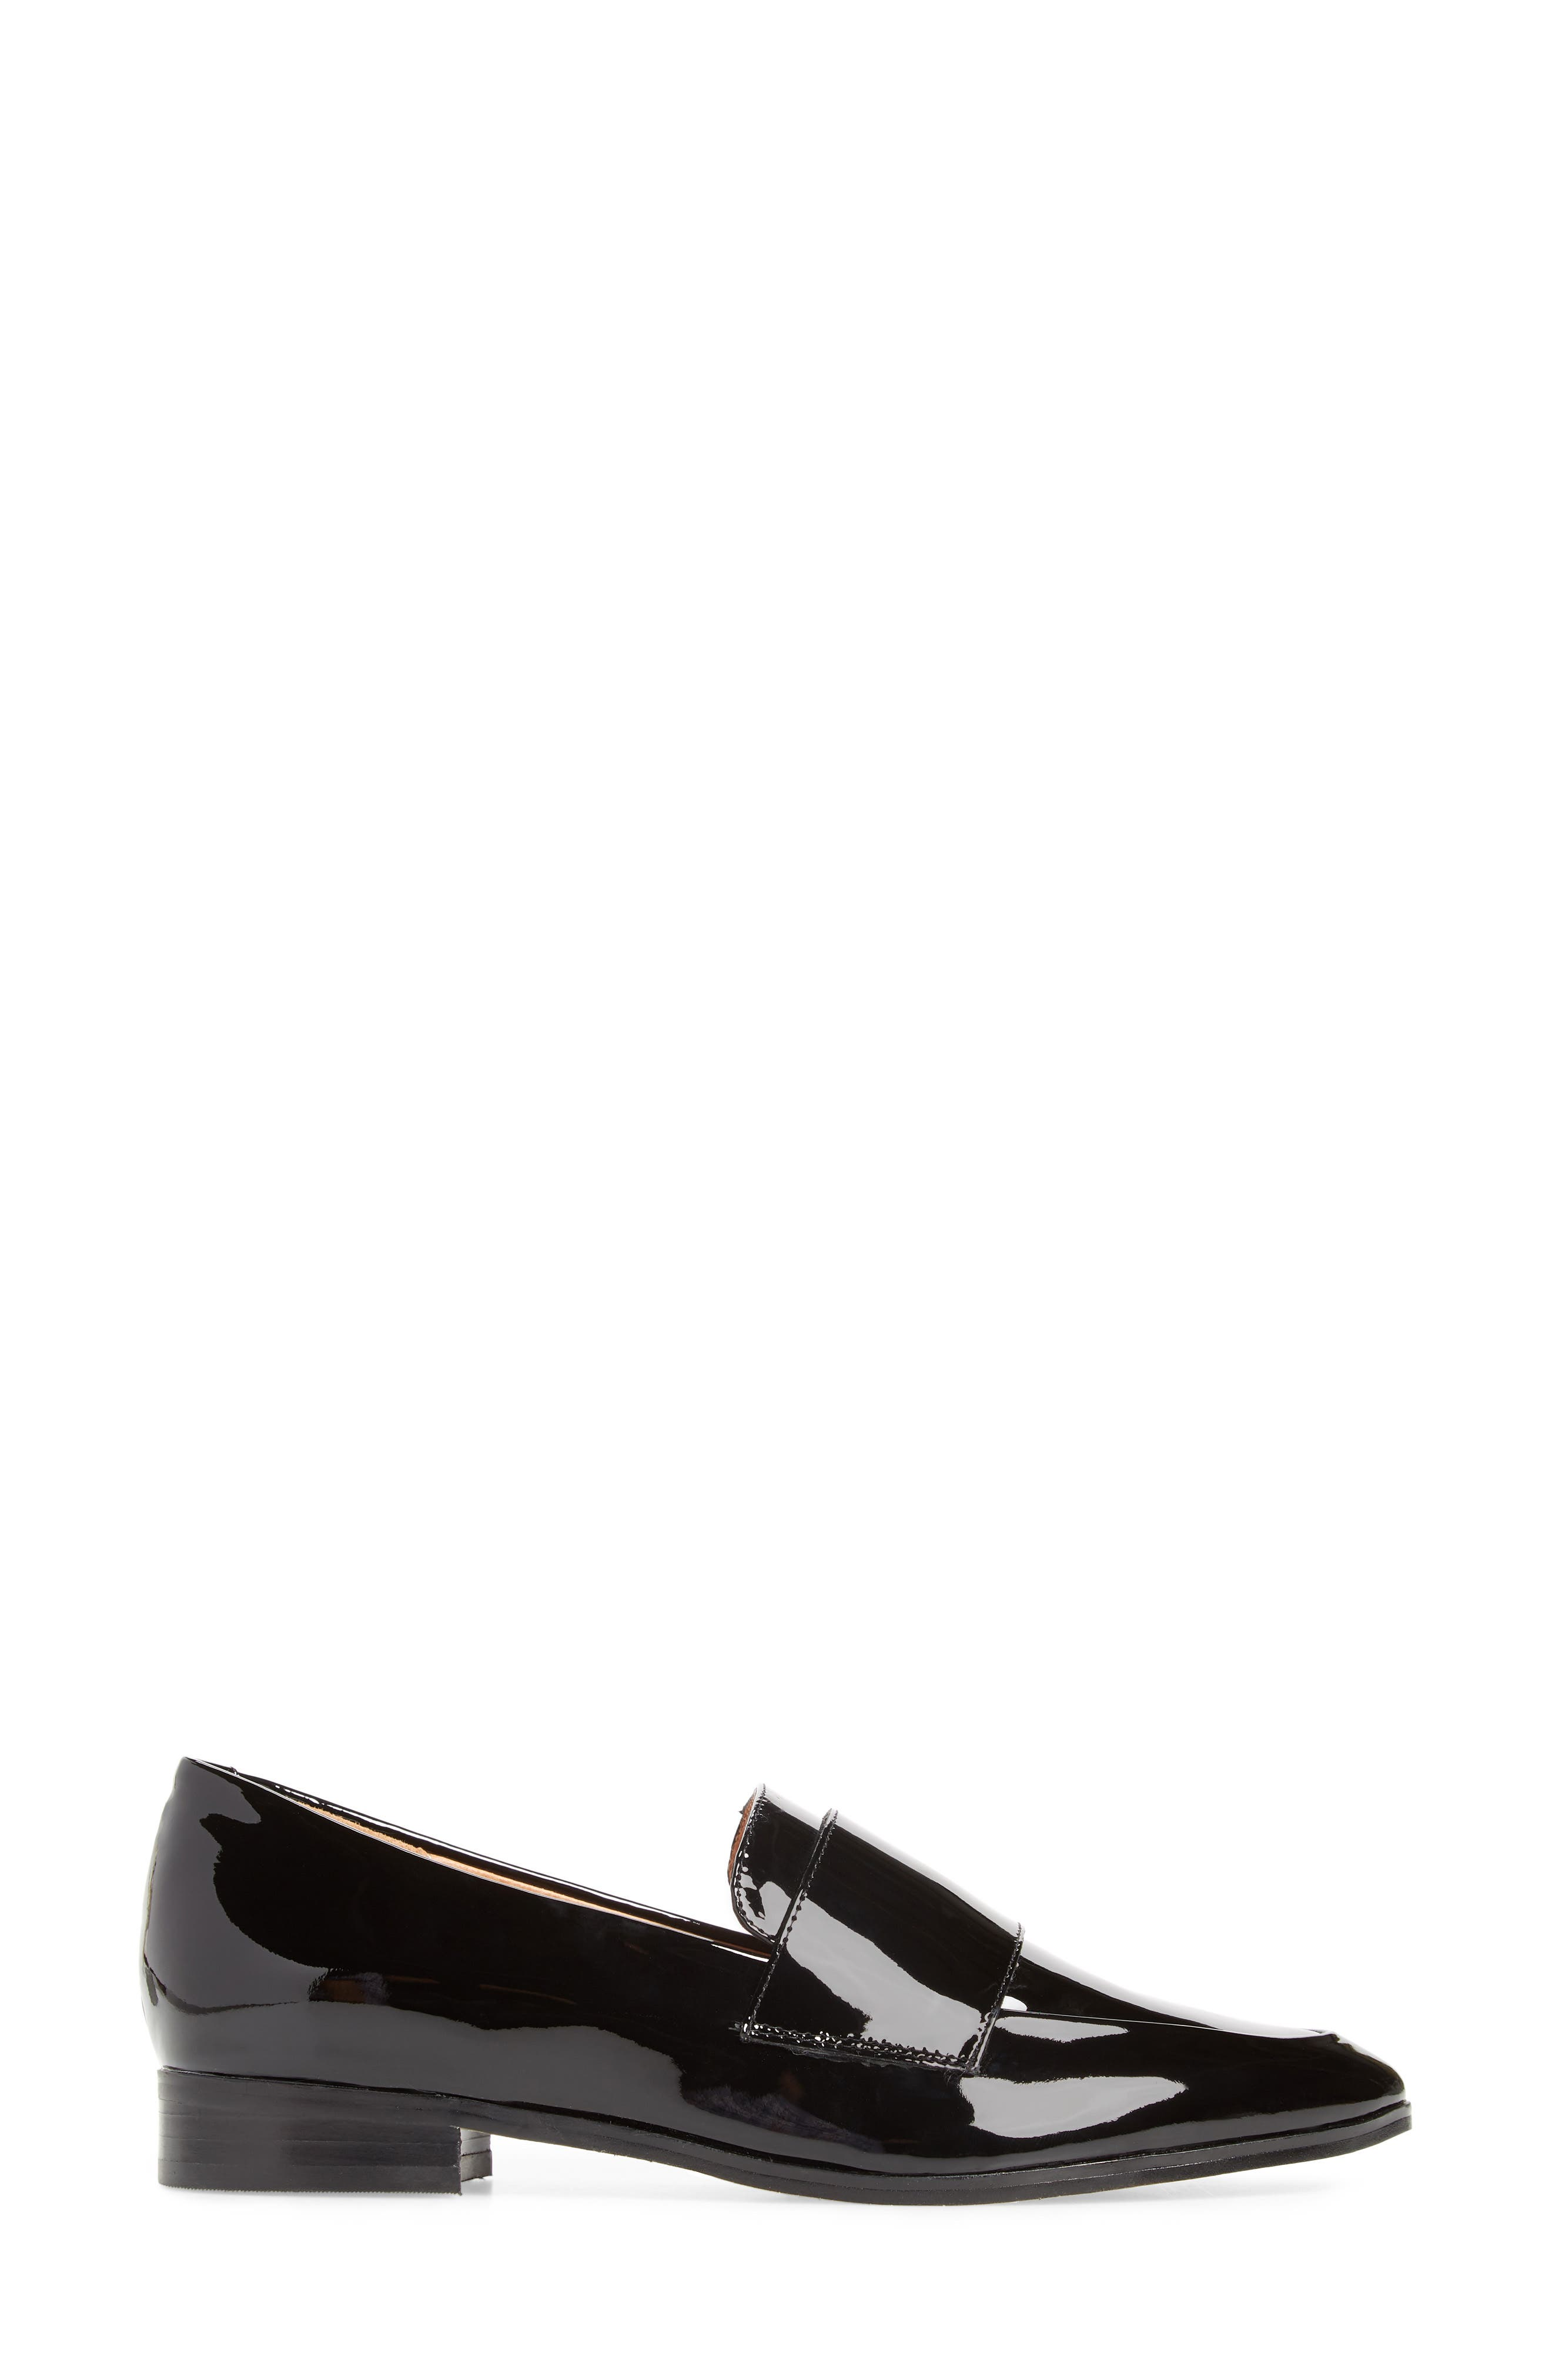 Emilia Loafer,                             Alternate thumbnail 3, color,                             BLACK PATENT LEATHER